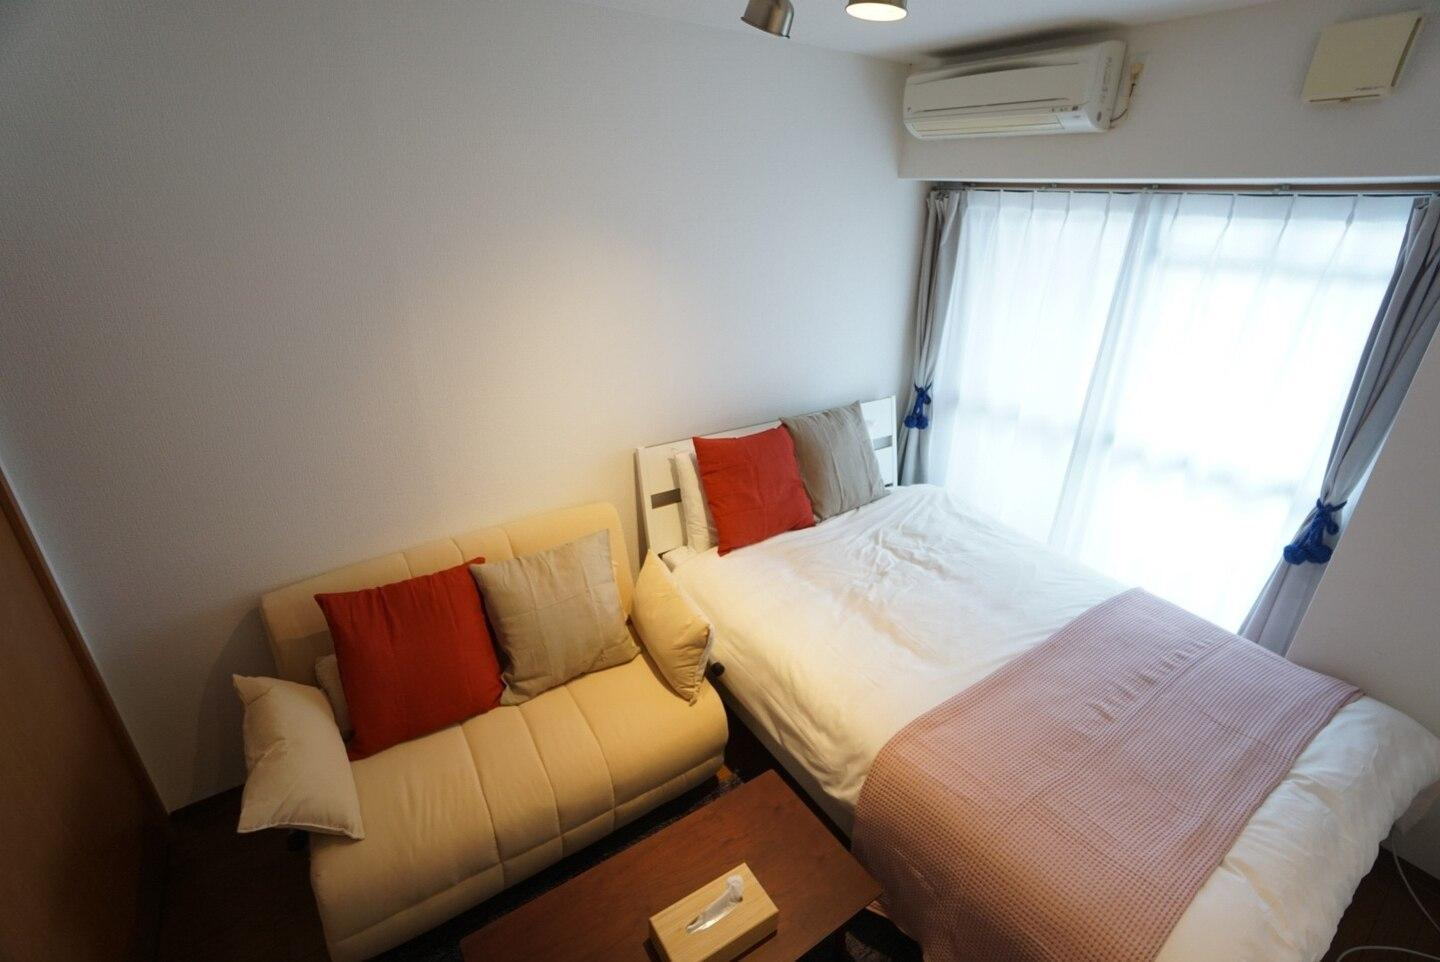 Legal Room 8 Mins To Namba Station By Walk  LGE63